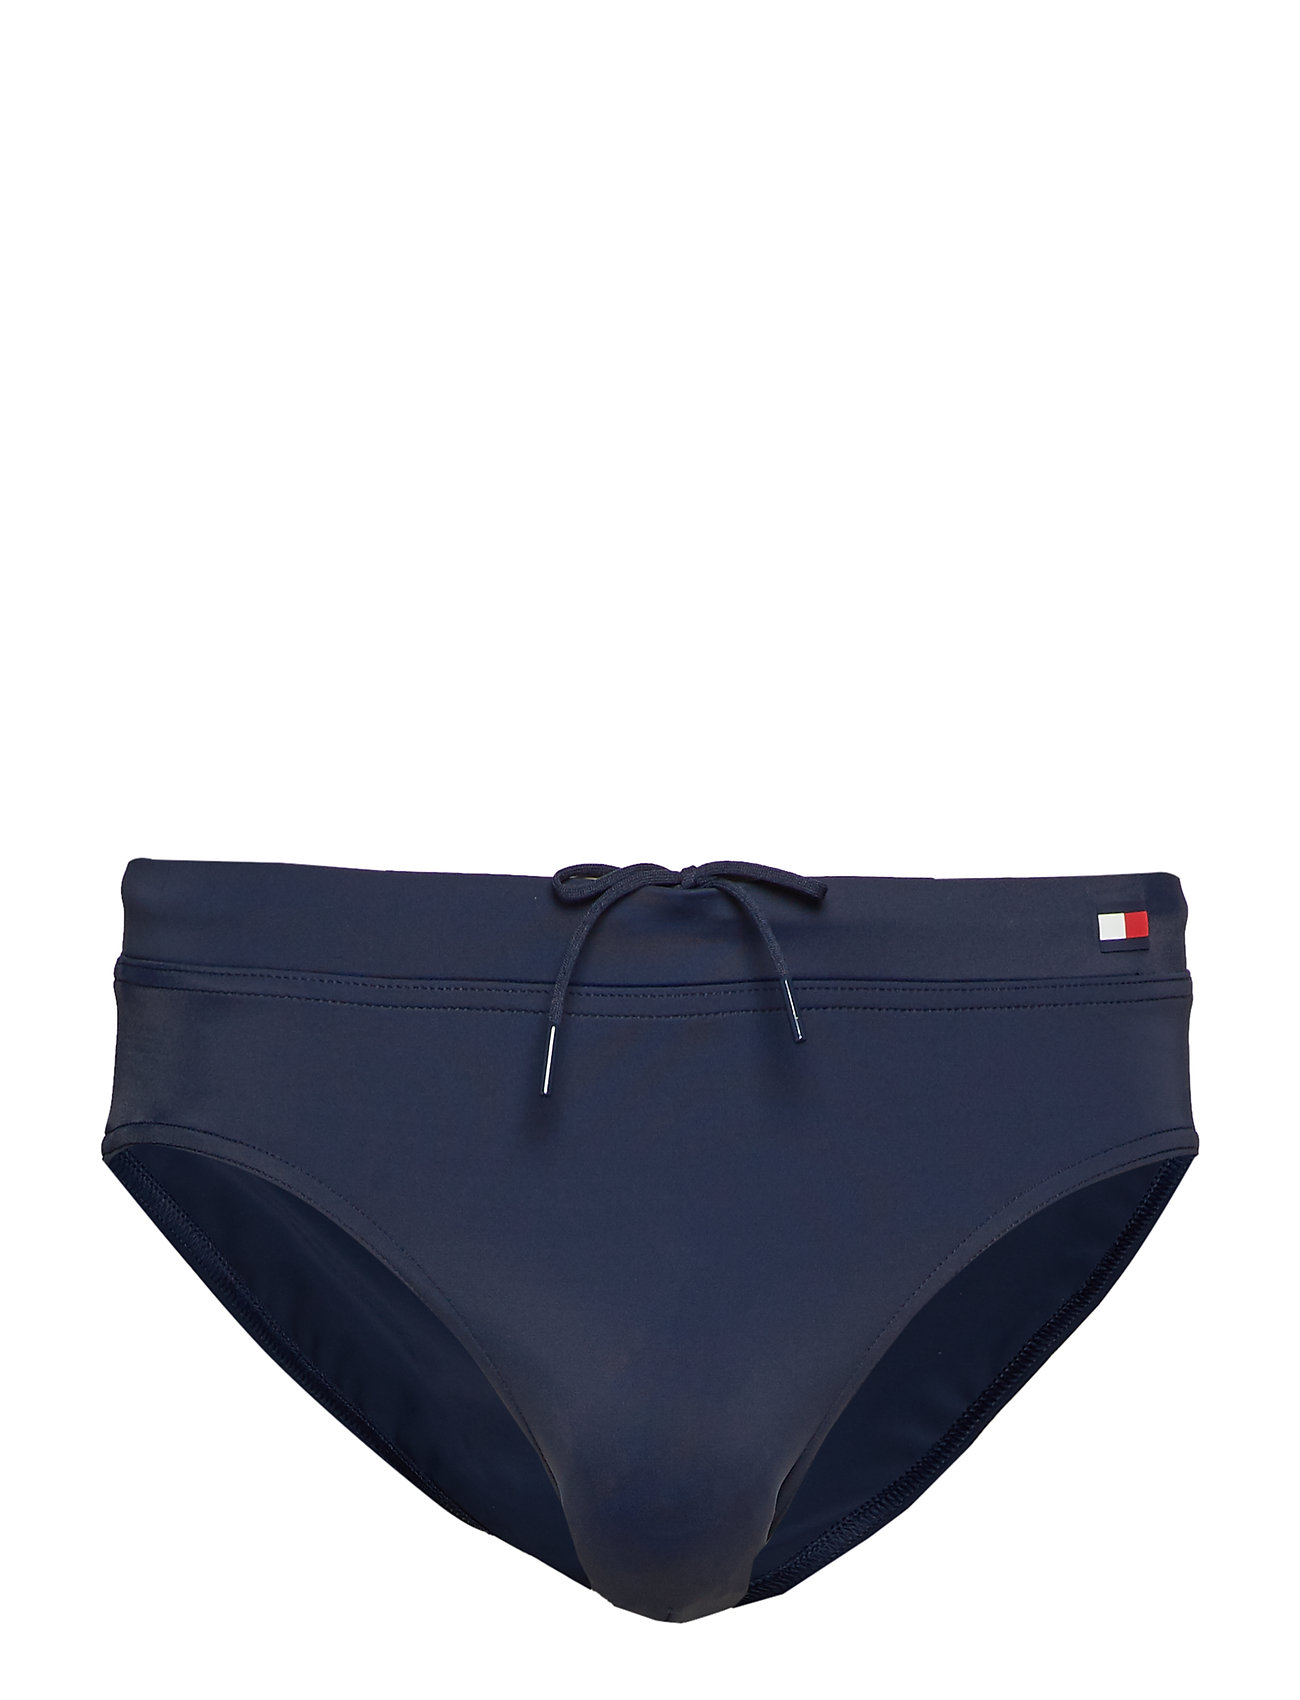 Tommy Hilfiger KNIT BRIEF - NAVY BLAZER